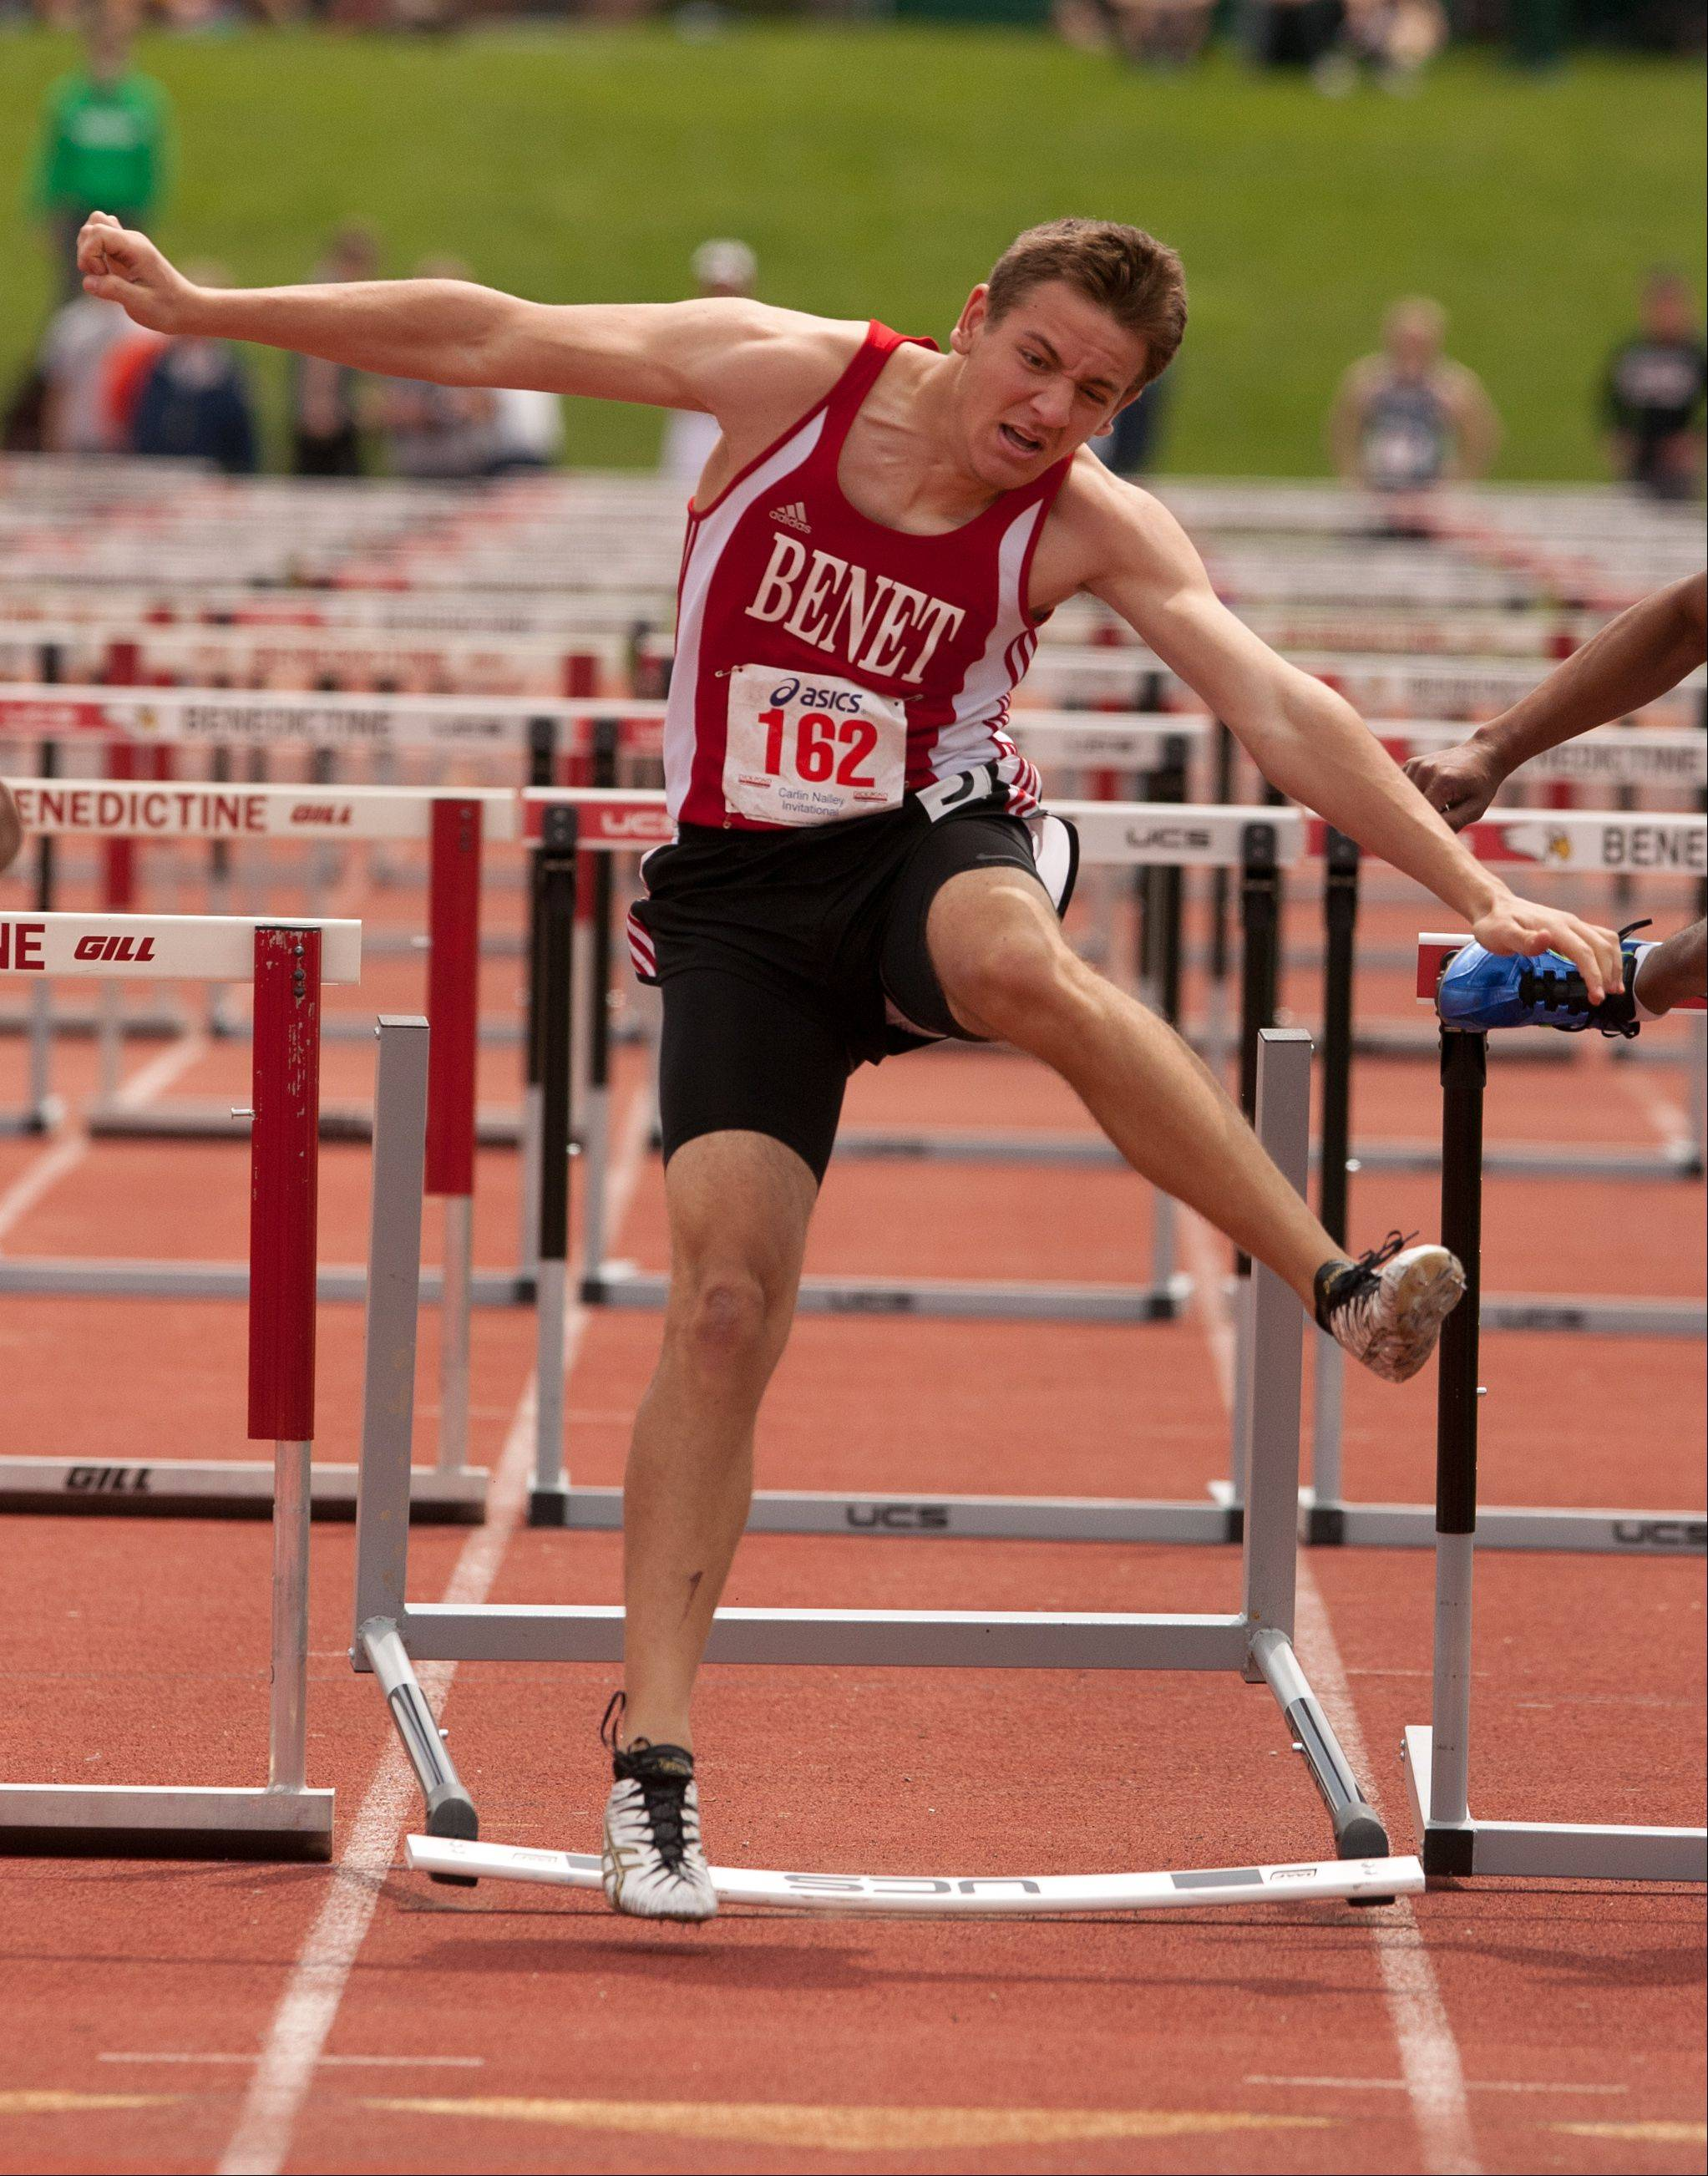 Benet's Austin Dzik competes in the 110-meter hurdles during the 46th annual Carlin Nalley Boys� Track Invitational at Benedictine University in Lisle.